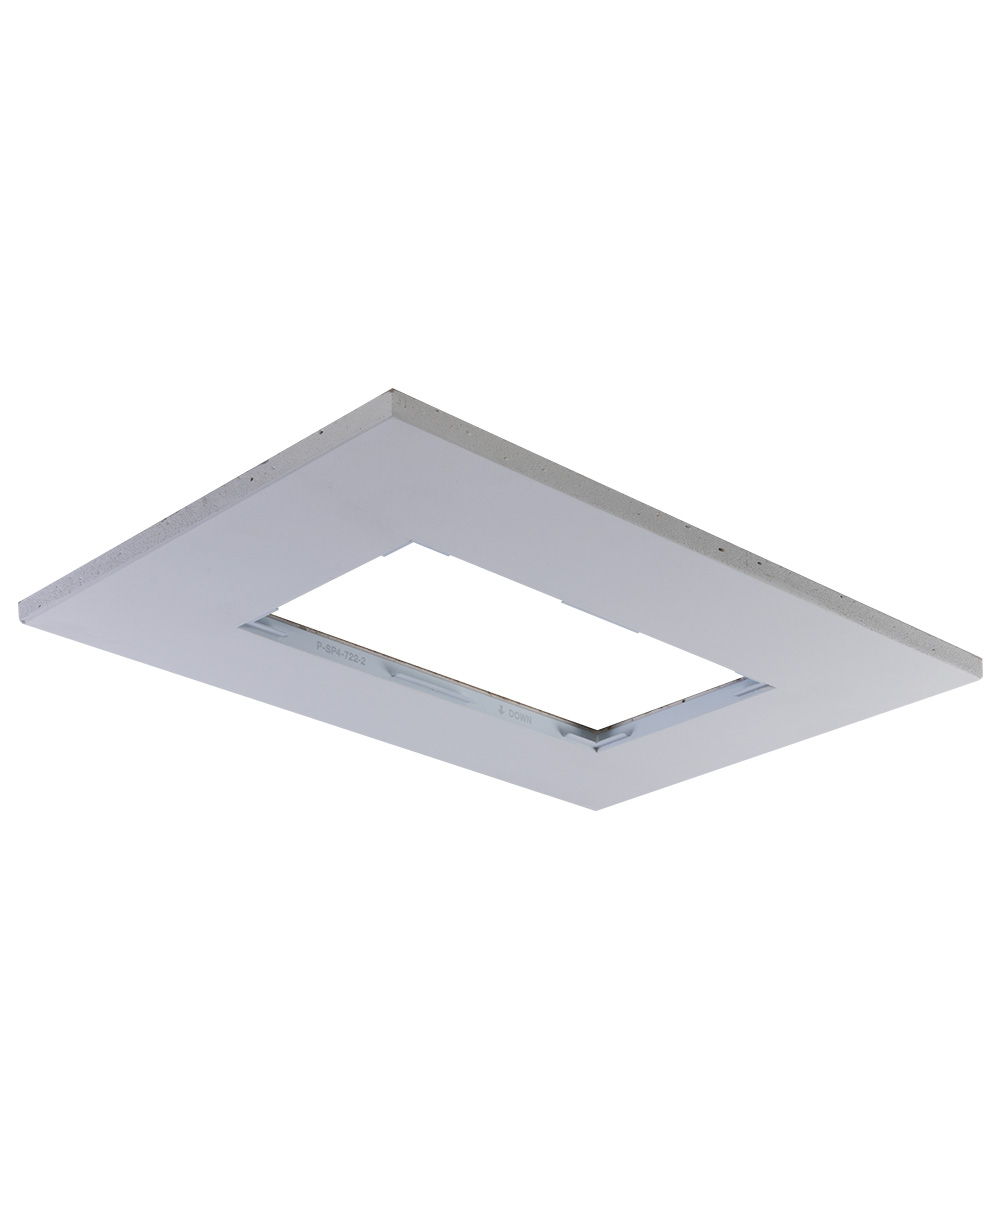 Sigma 4 2-Light Linear Pulldown LED Fixture